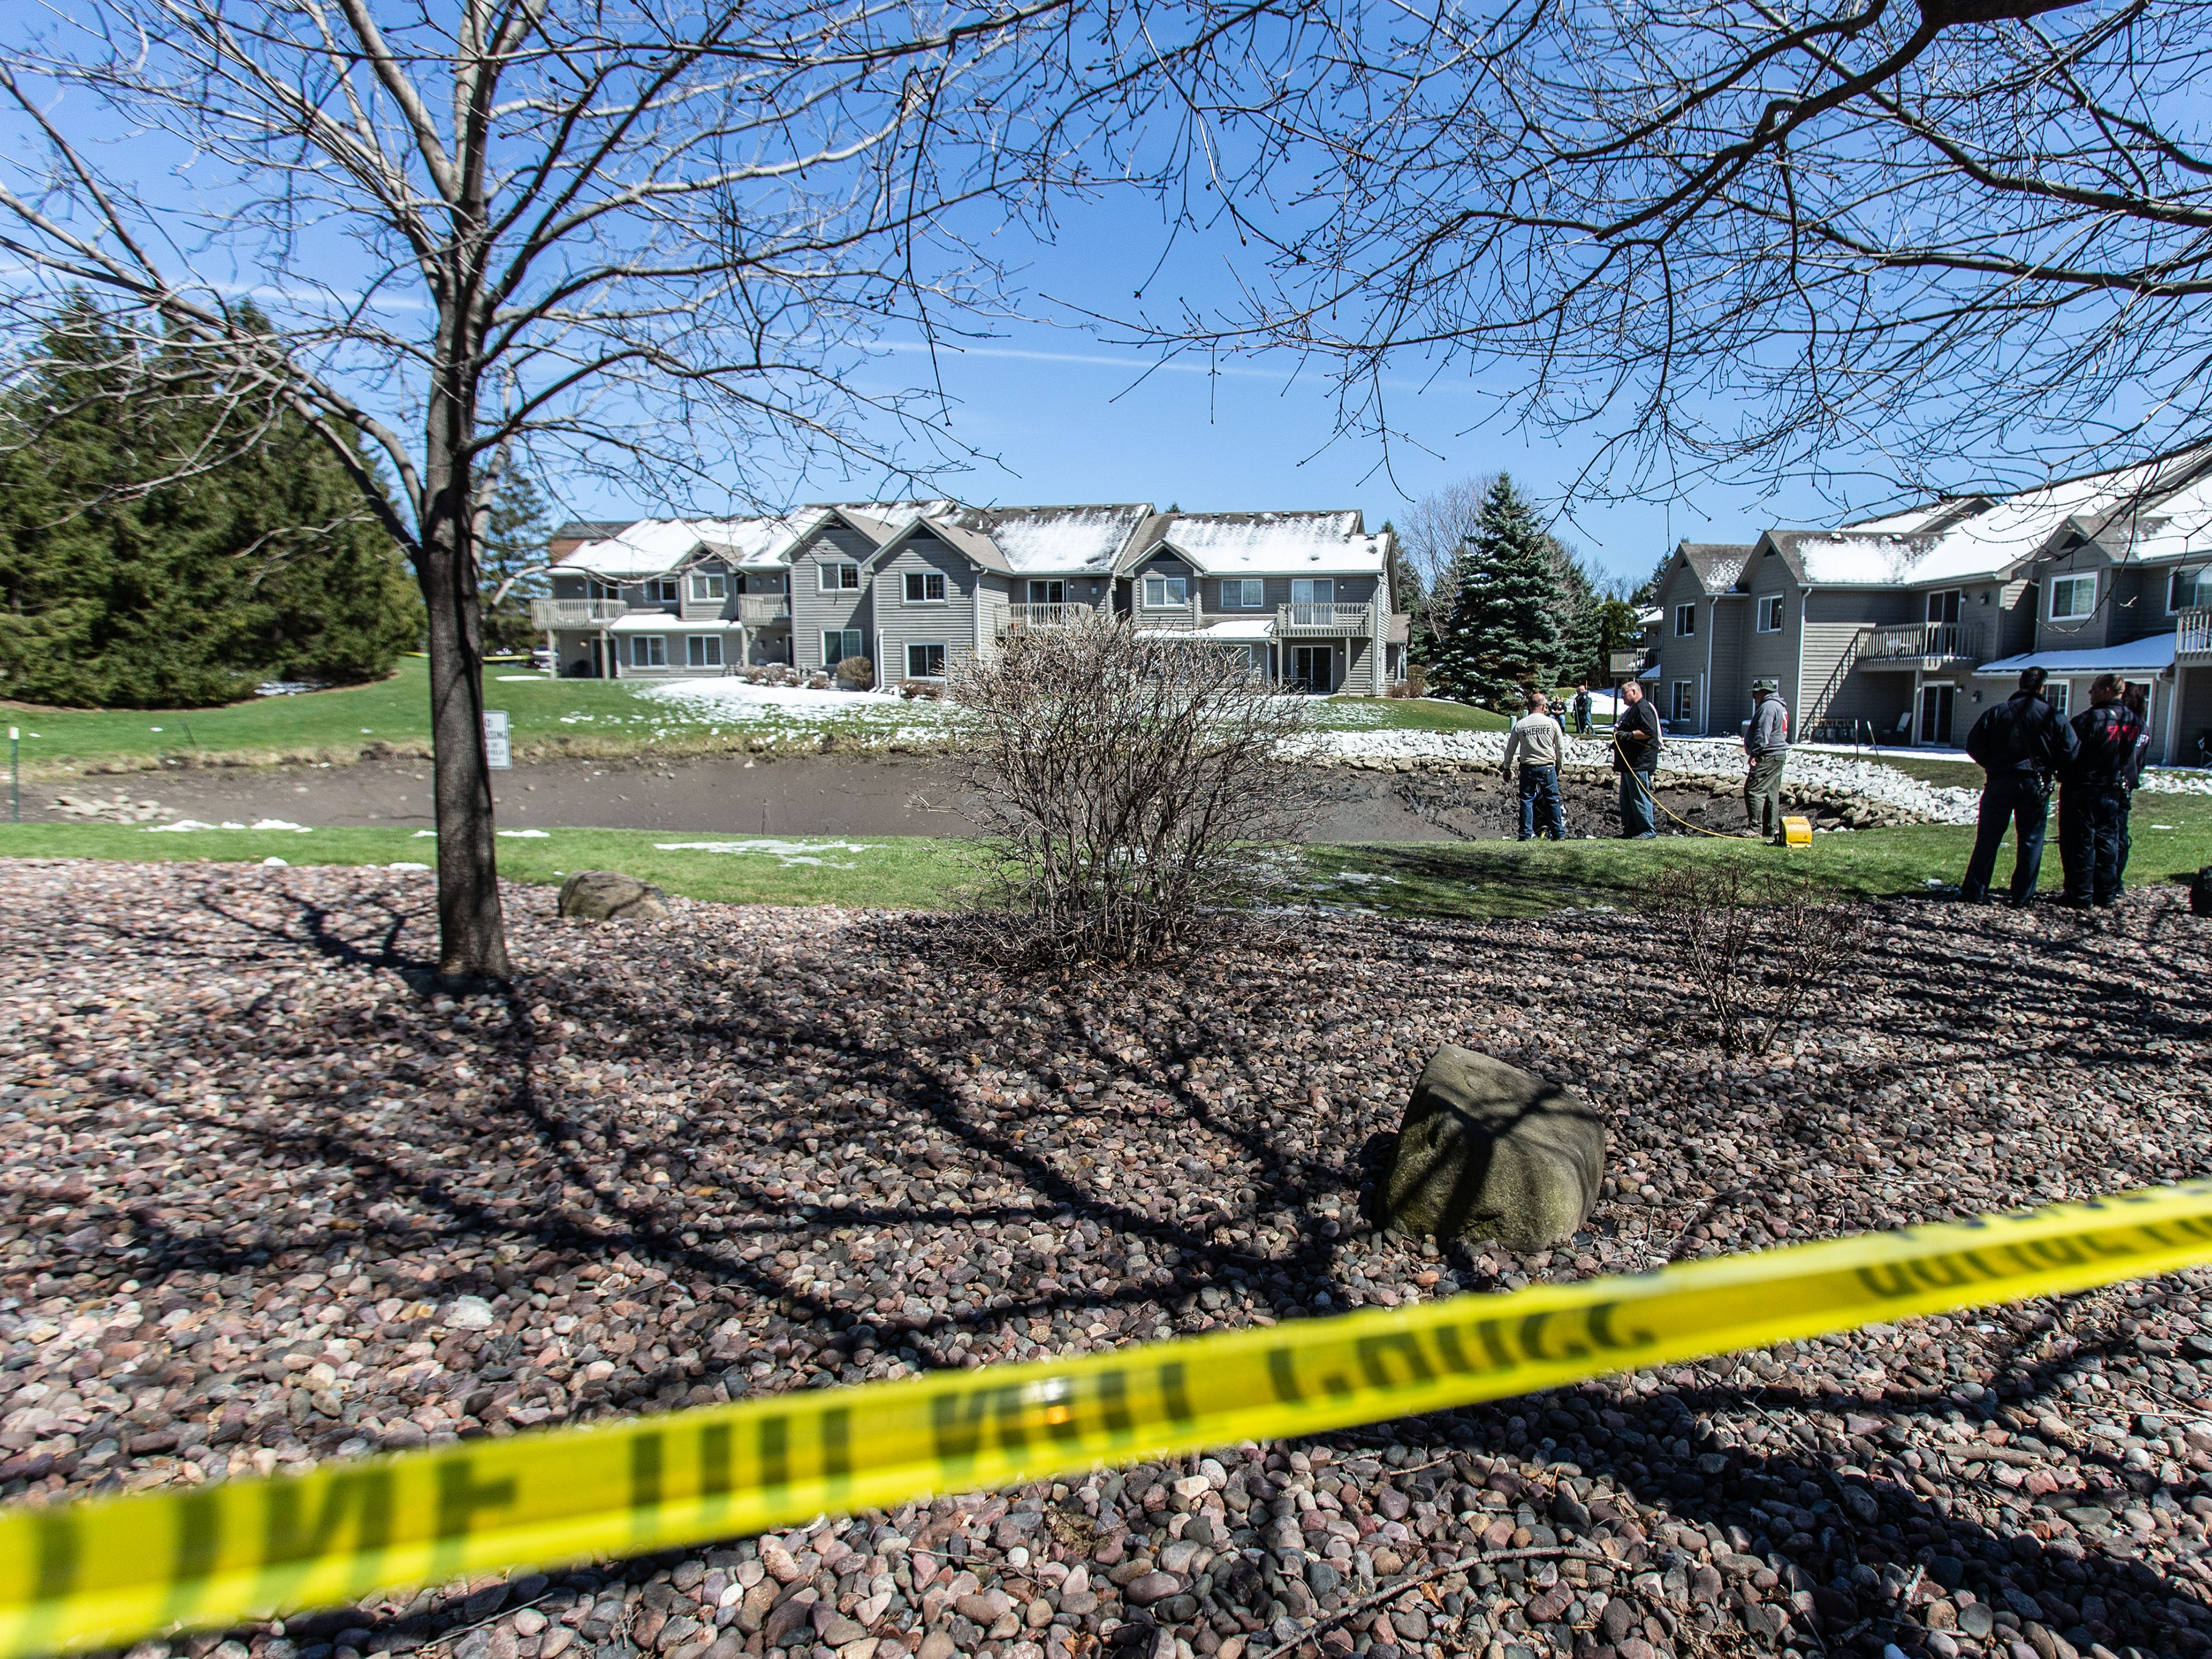 The Town of Brookfield Police search for evidence in a drained pond at the Brookfield Lake Condominiums on Monday, April 15, 2019 with assistance from the Waukesha County Sheriff's Dive Team and the Elm Grove Police Department's drone. The search is related to a November homicide.